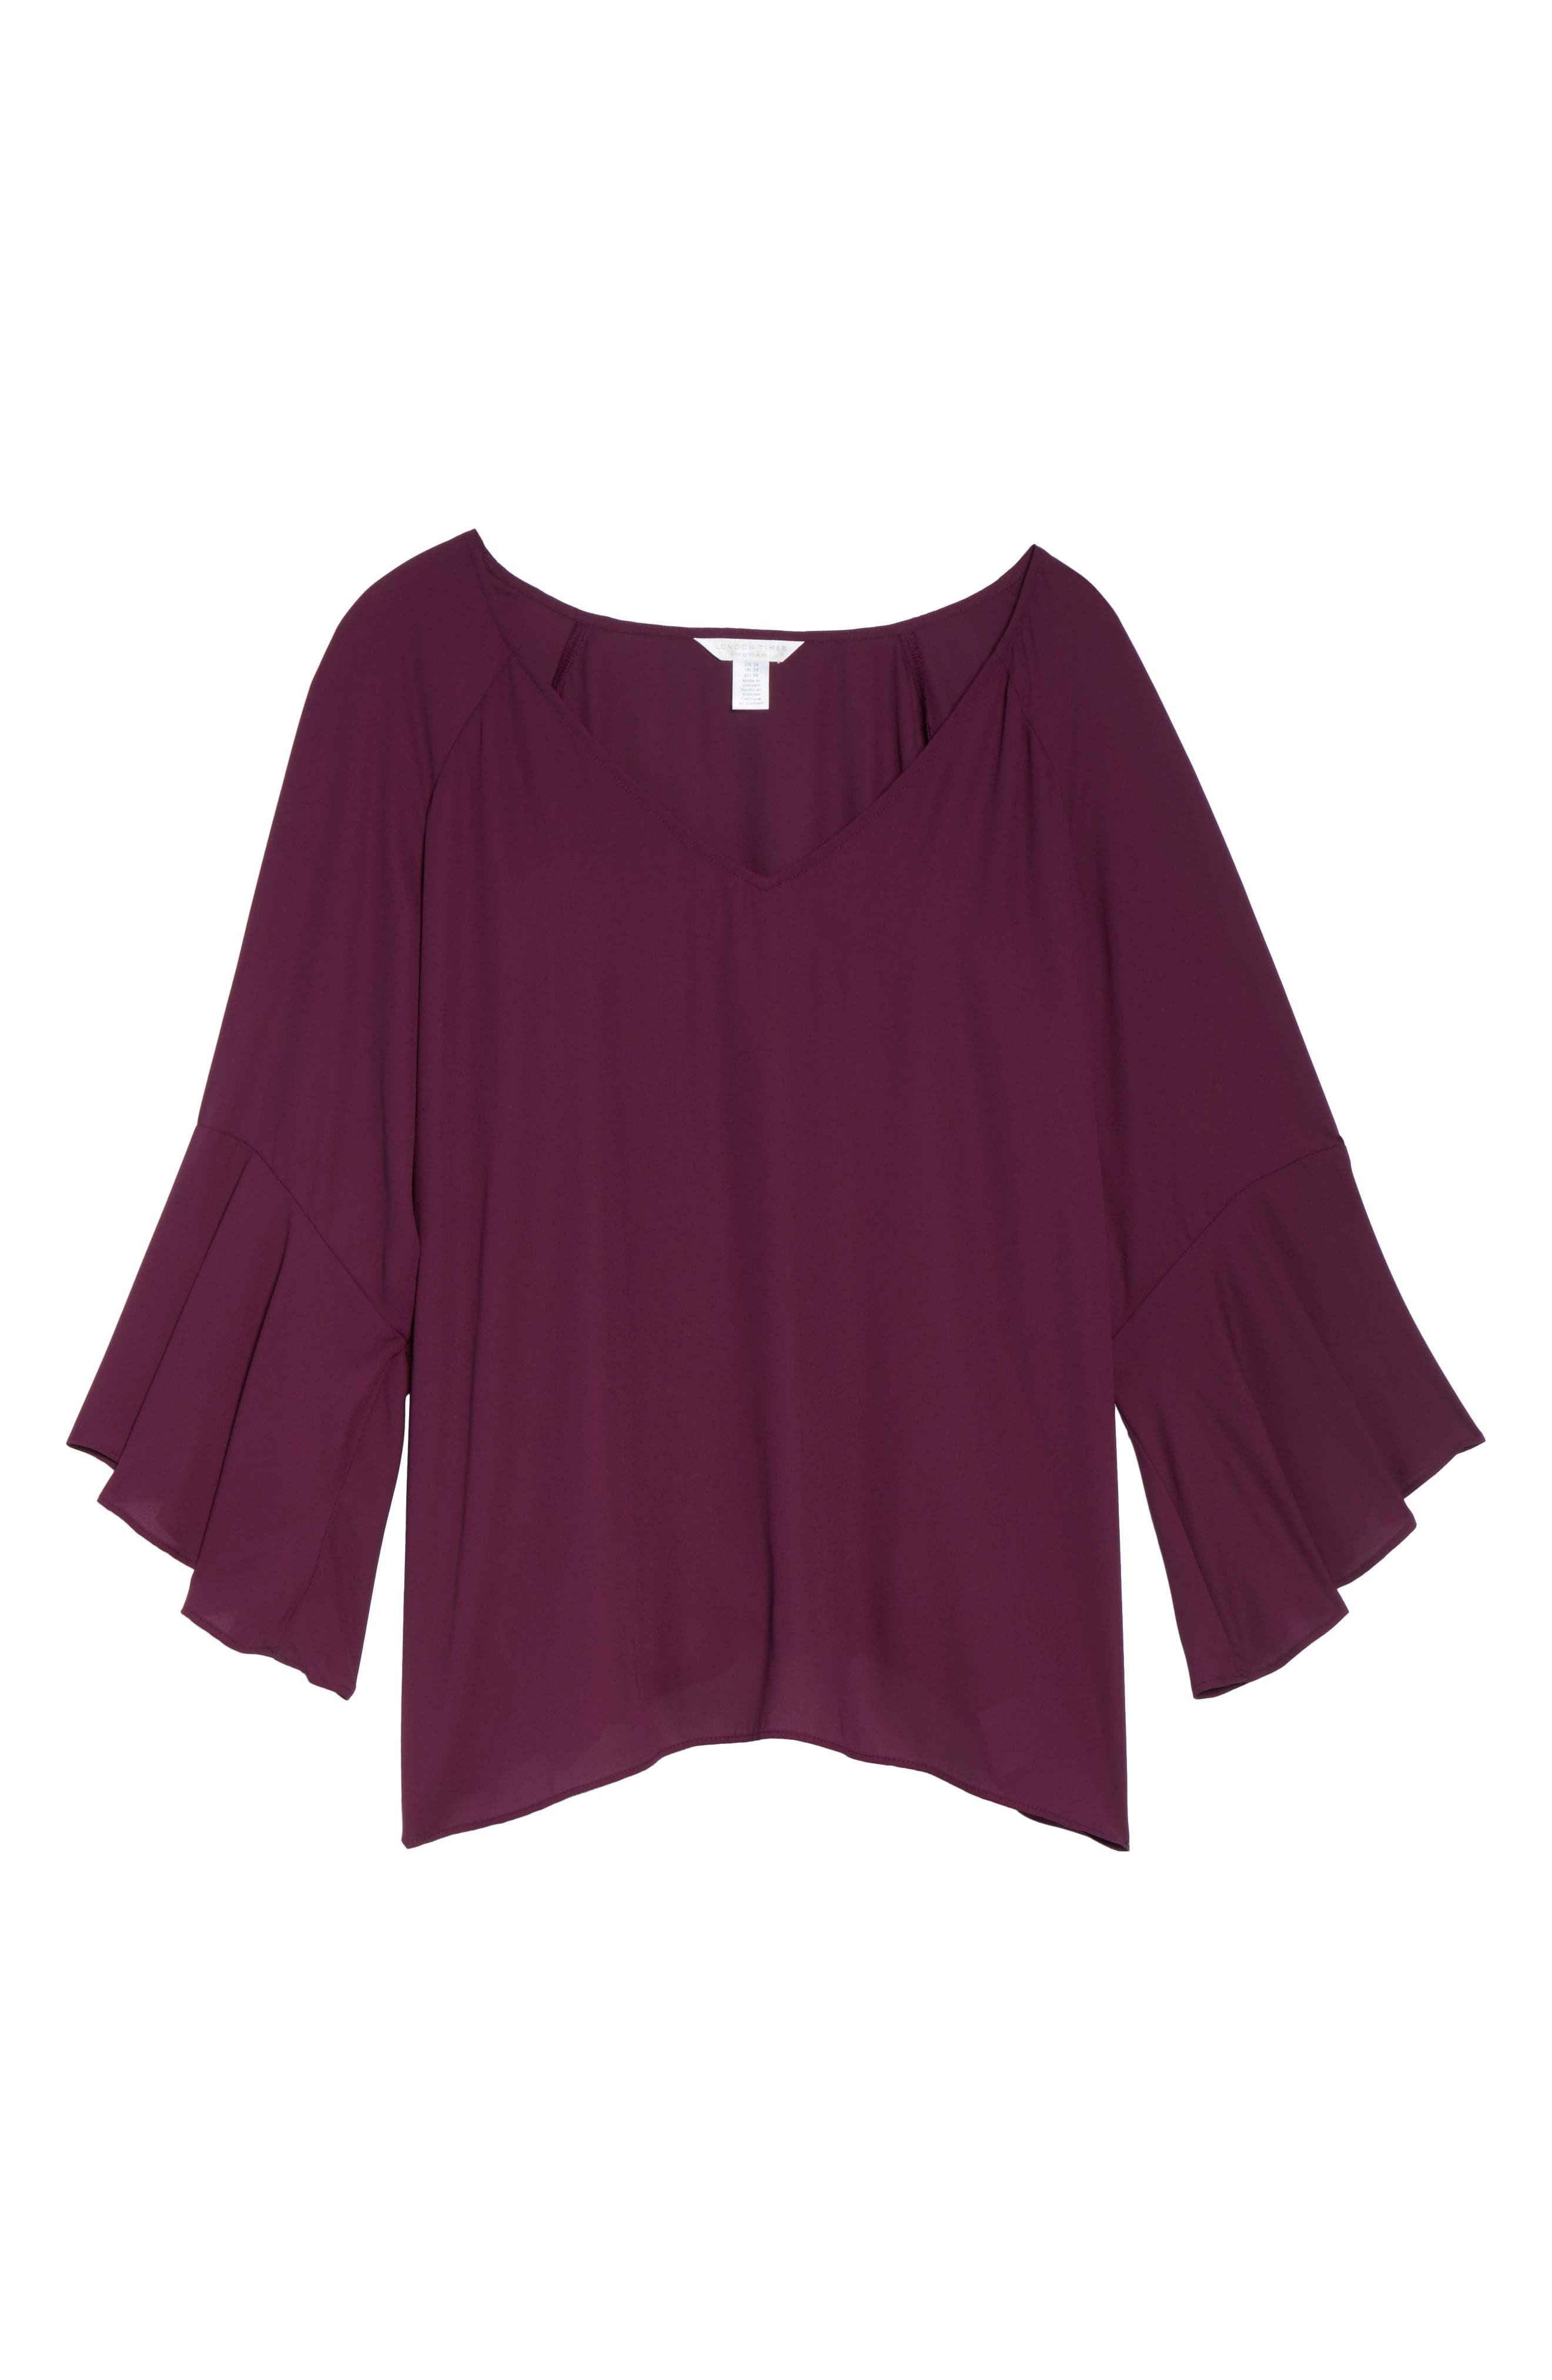 Bell Sleeve Blouse,                             Alternate thumbnail 6, color,                             Eggplant